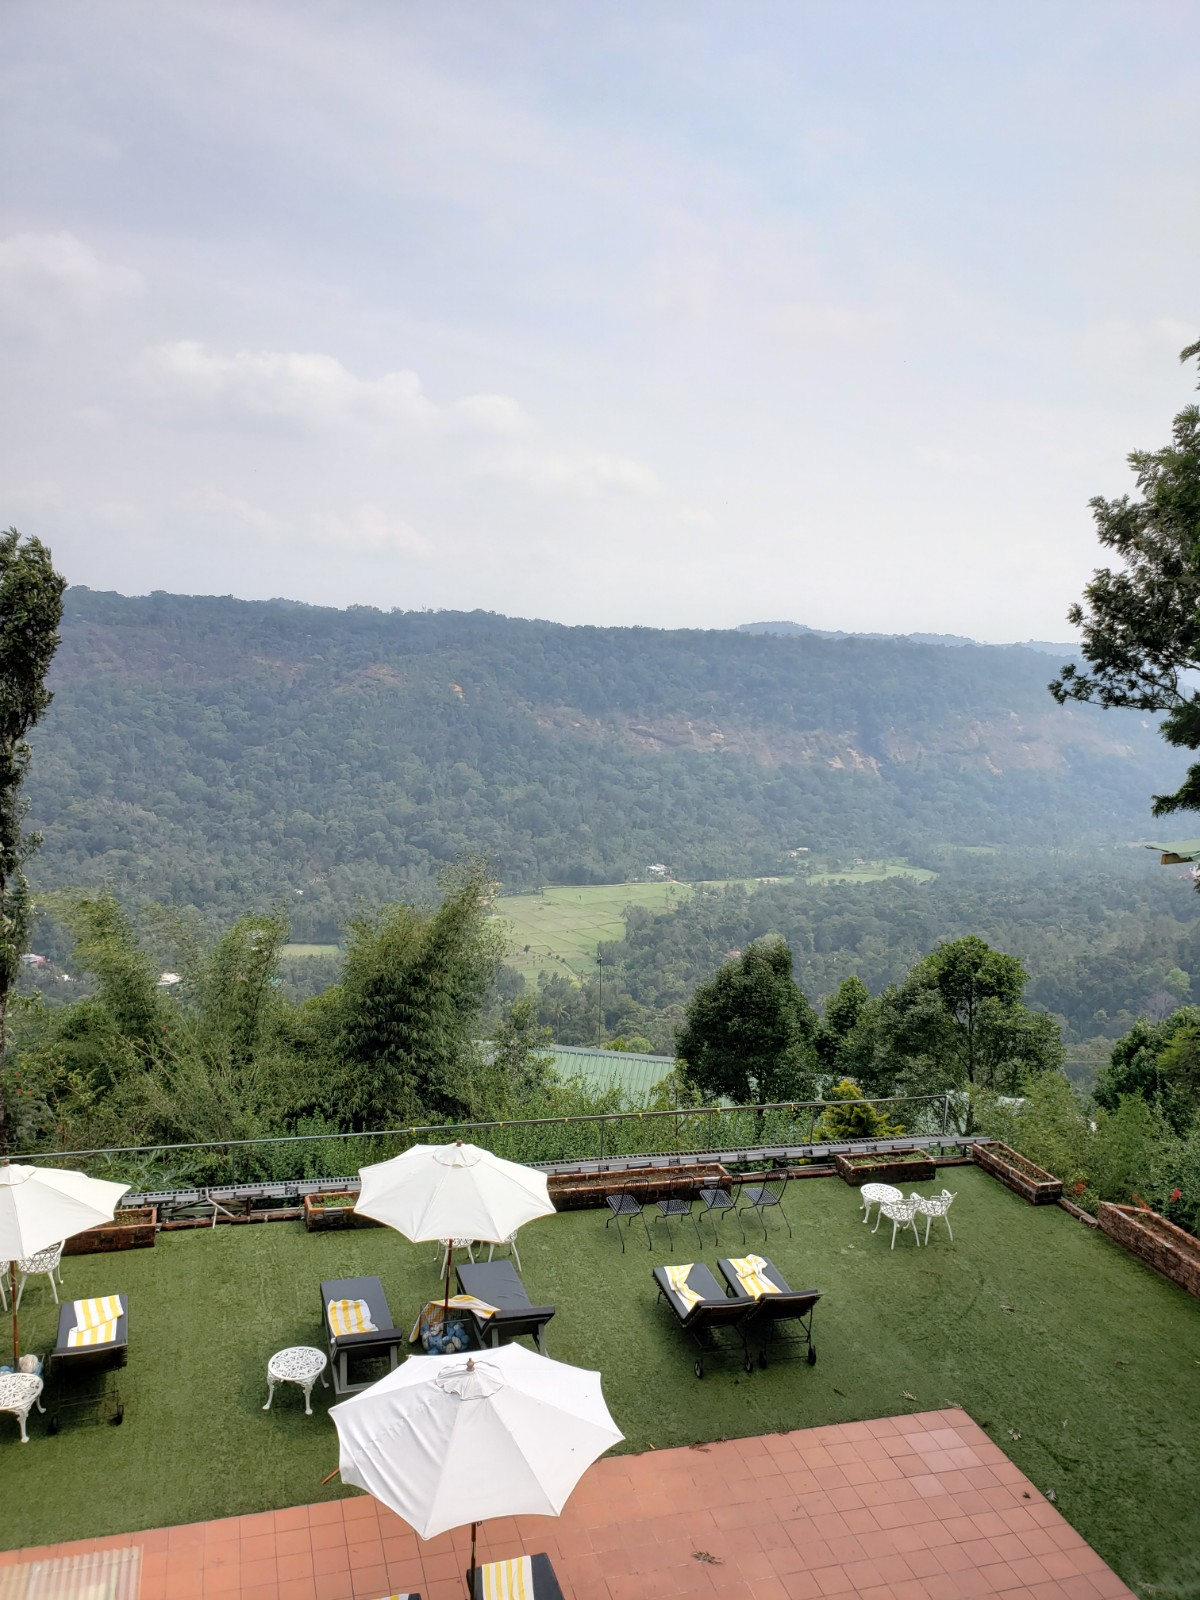 The view from Spice Tree Village in the beautiful Munnar - This resort was spectacular.